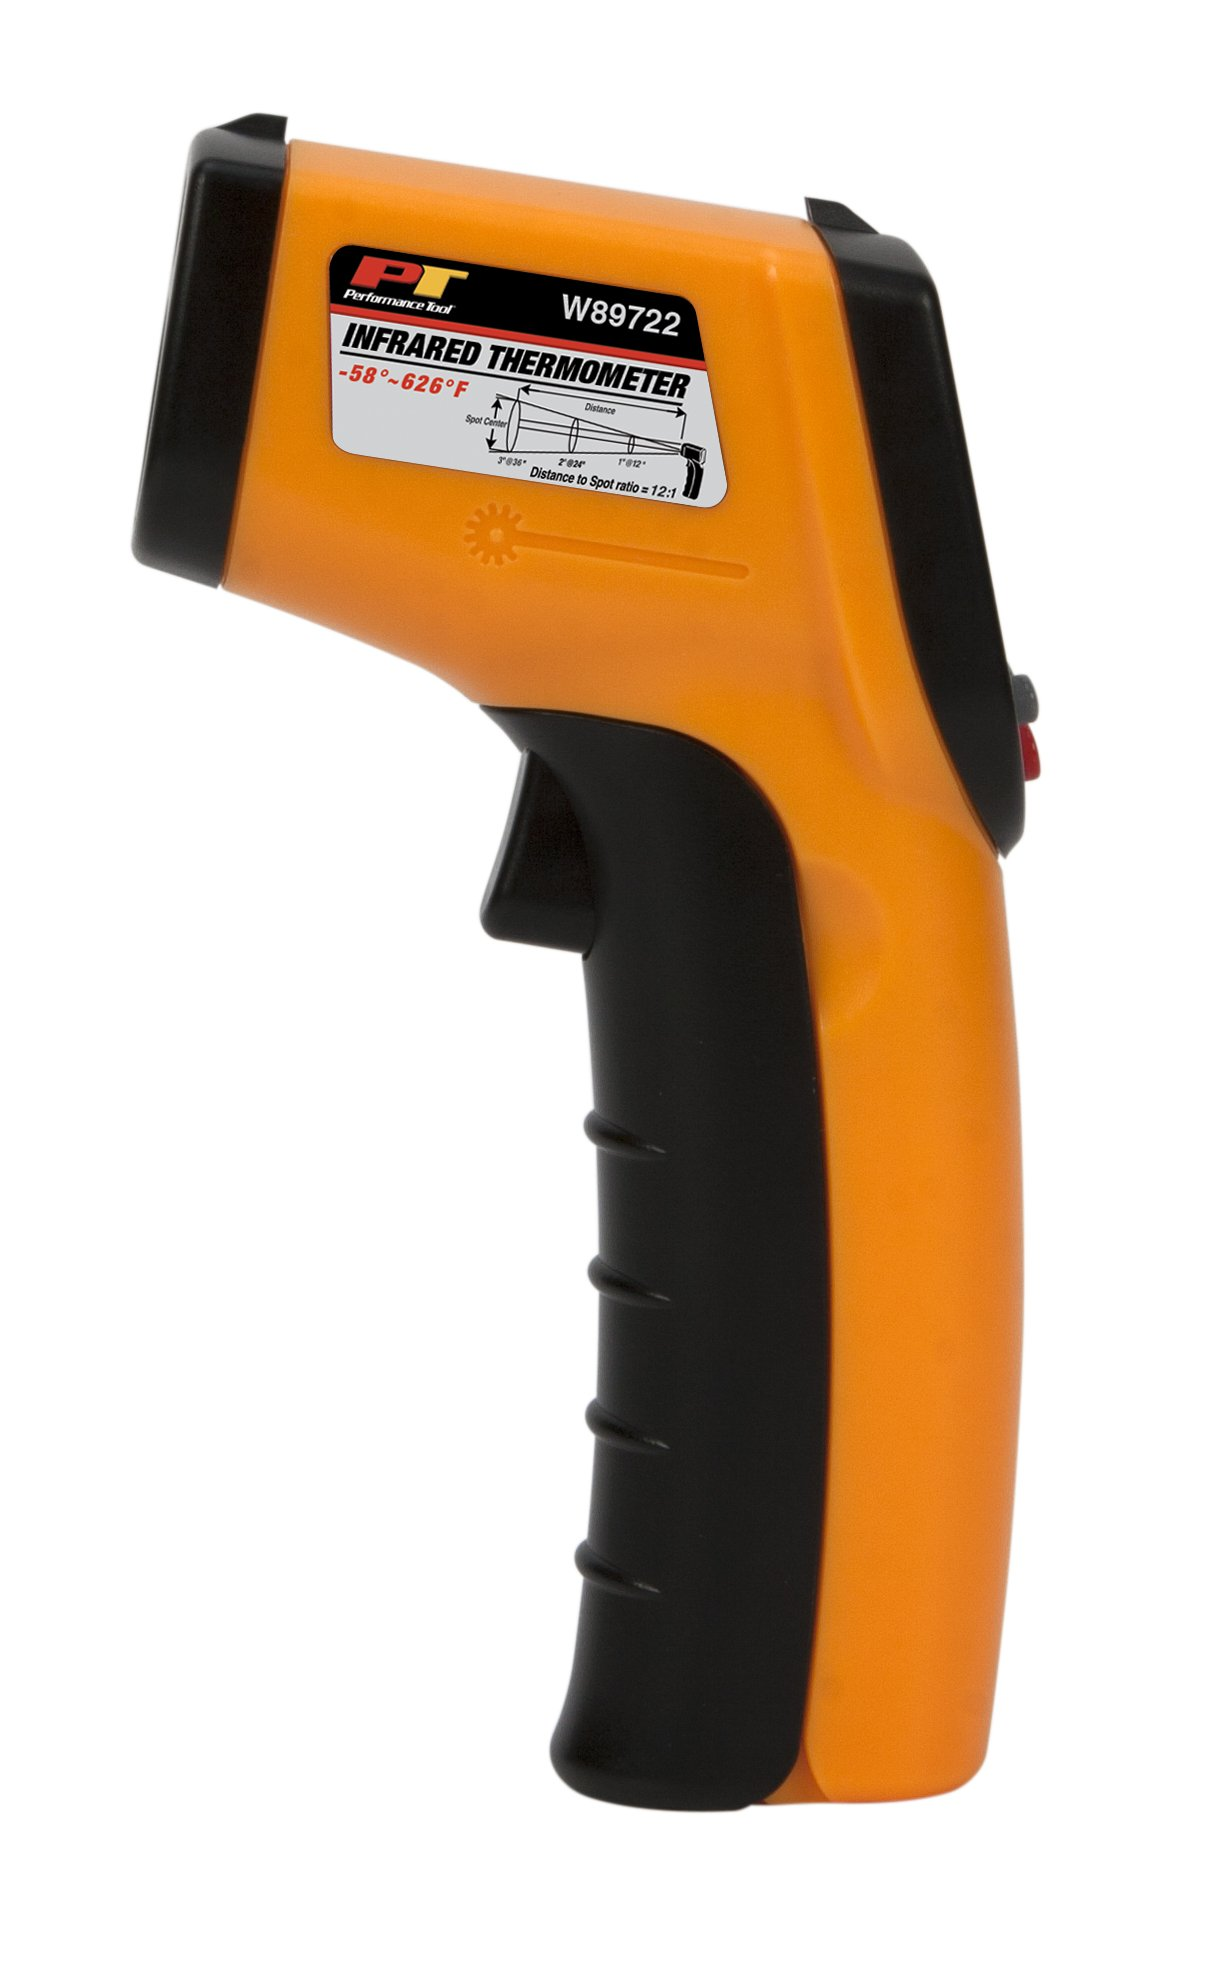 Performance Tool W89722 Non-Contact Digital Laser Infrared Thermometer, Orange and Black, NULL